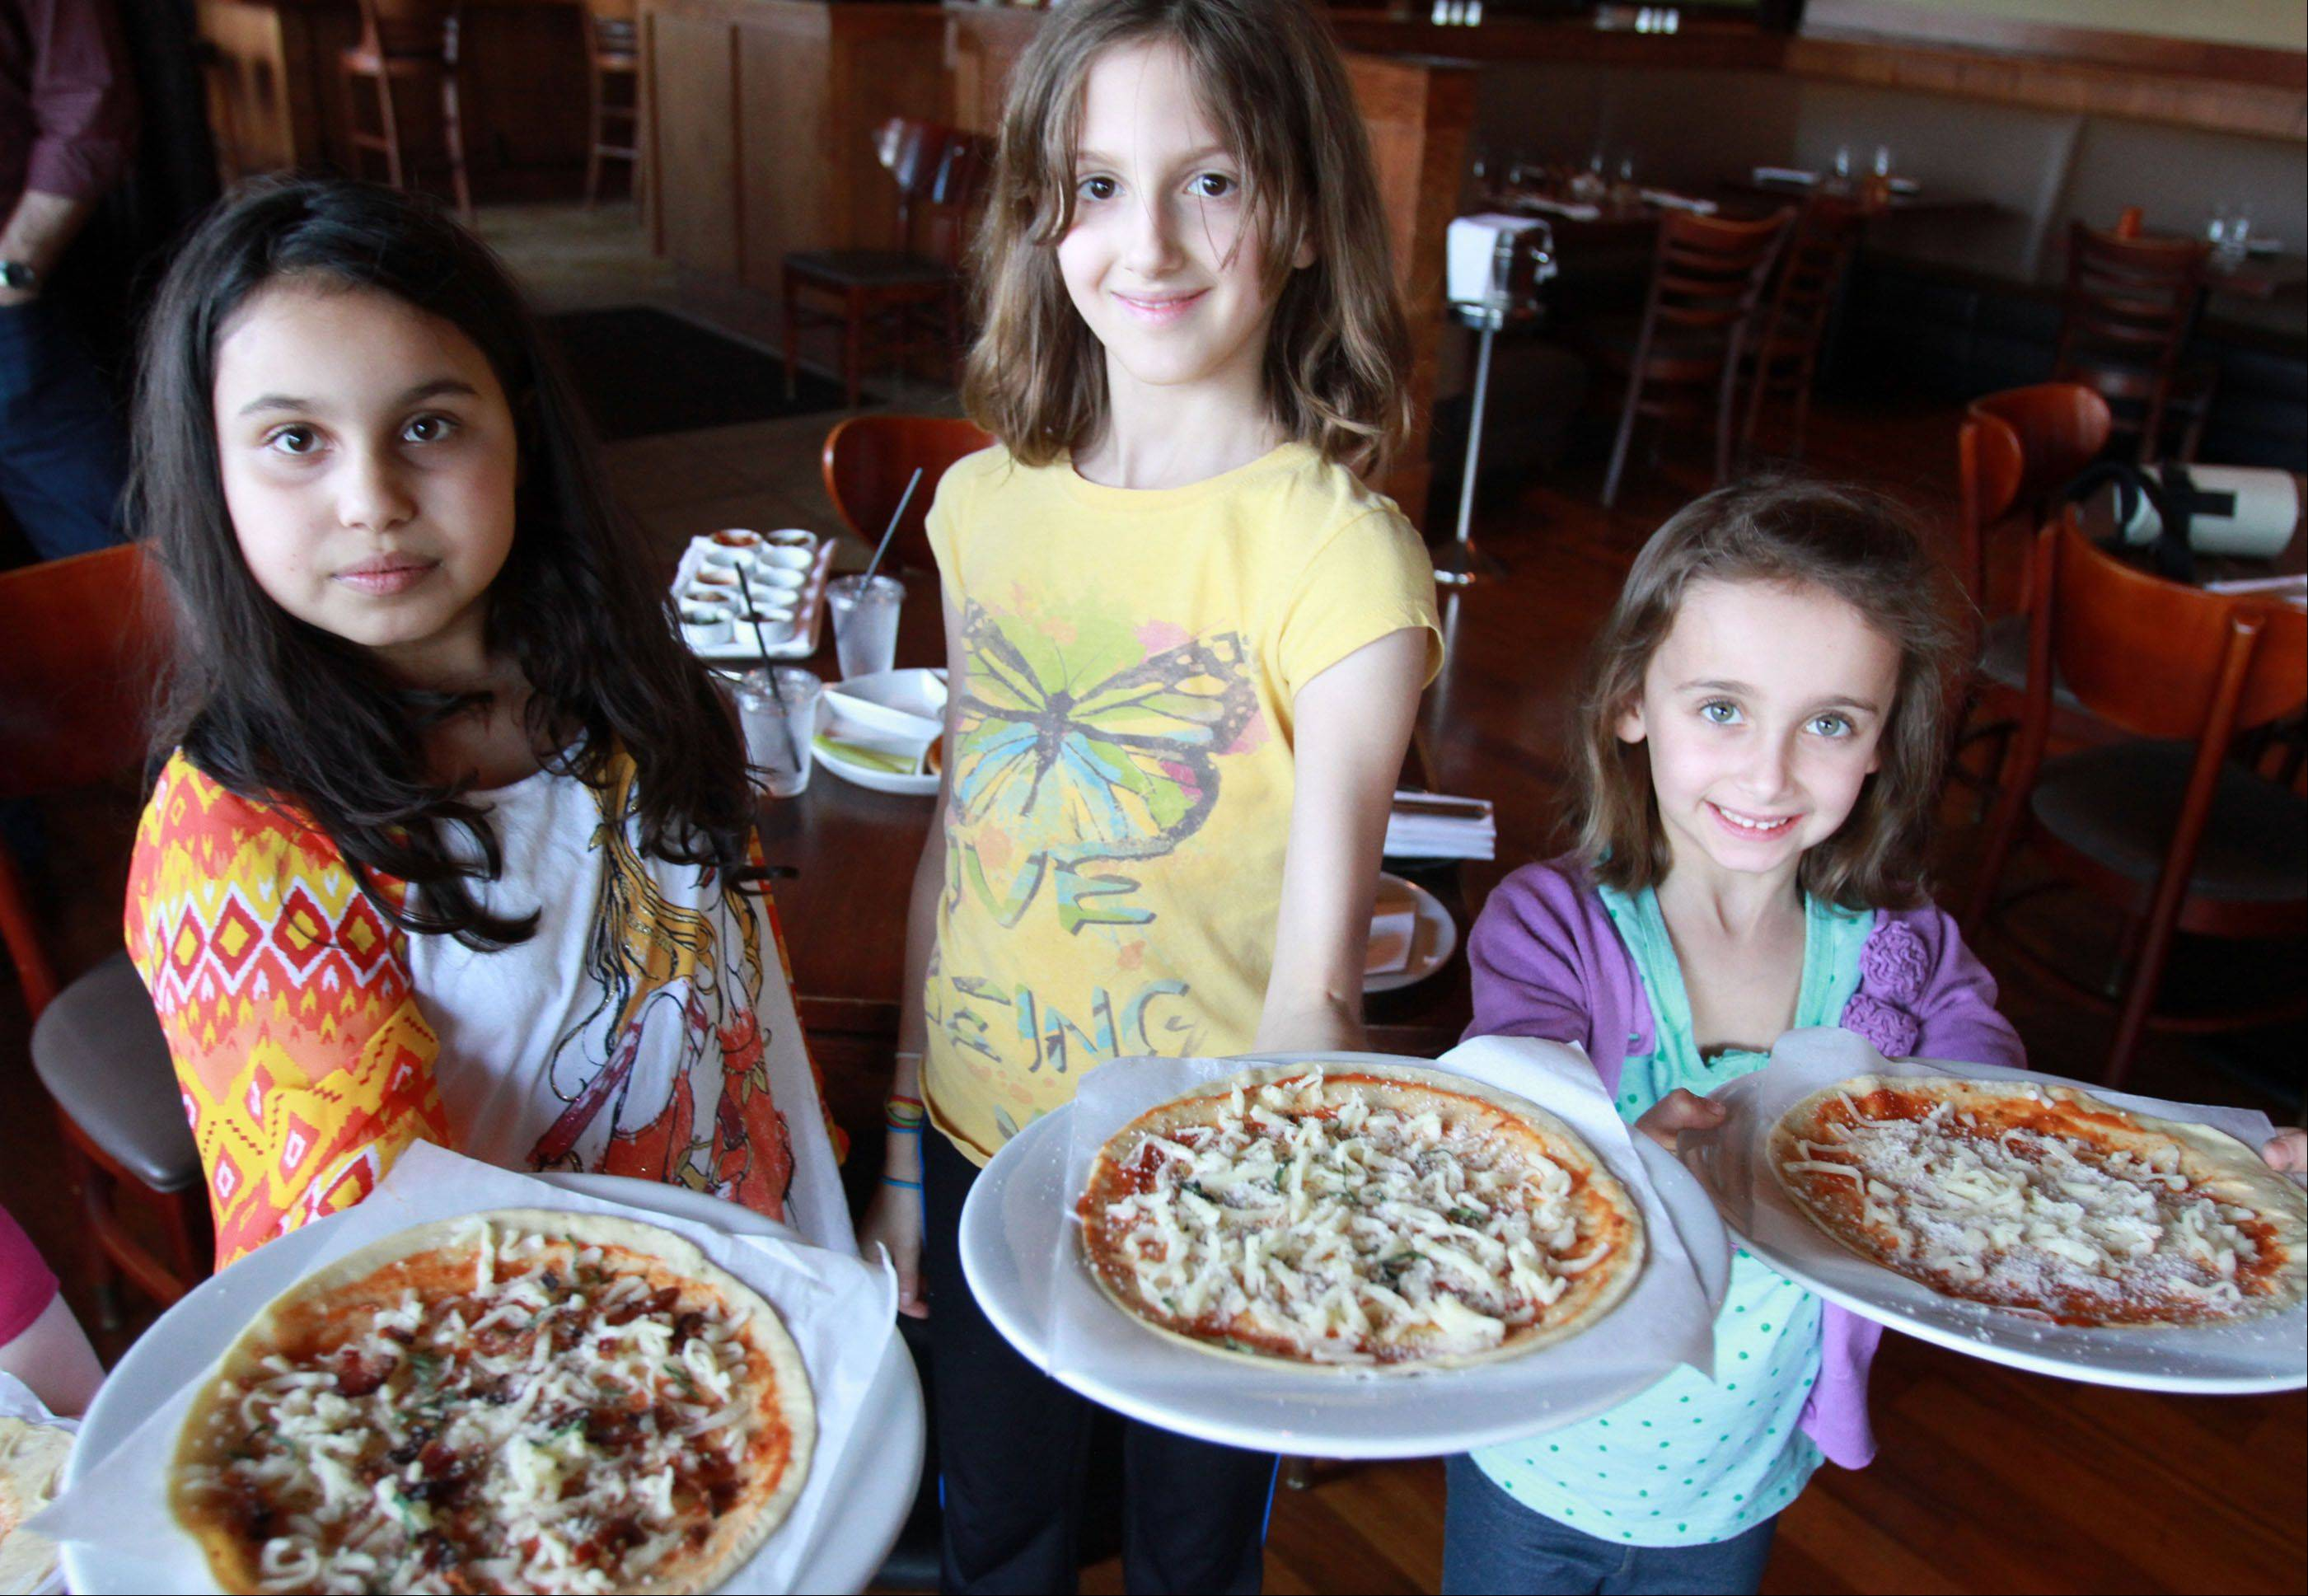 Brain food: How to 'trick' kids into eating healthy